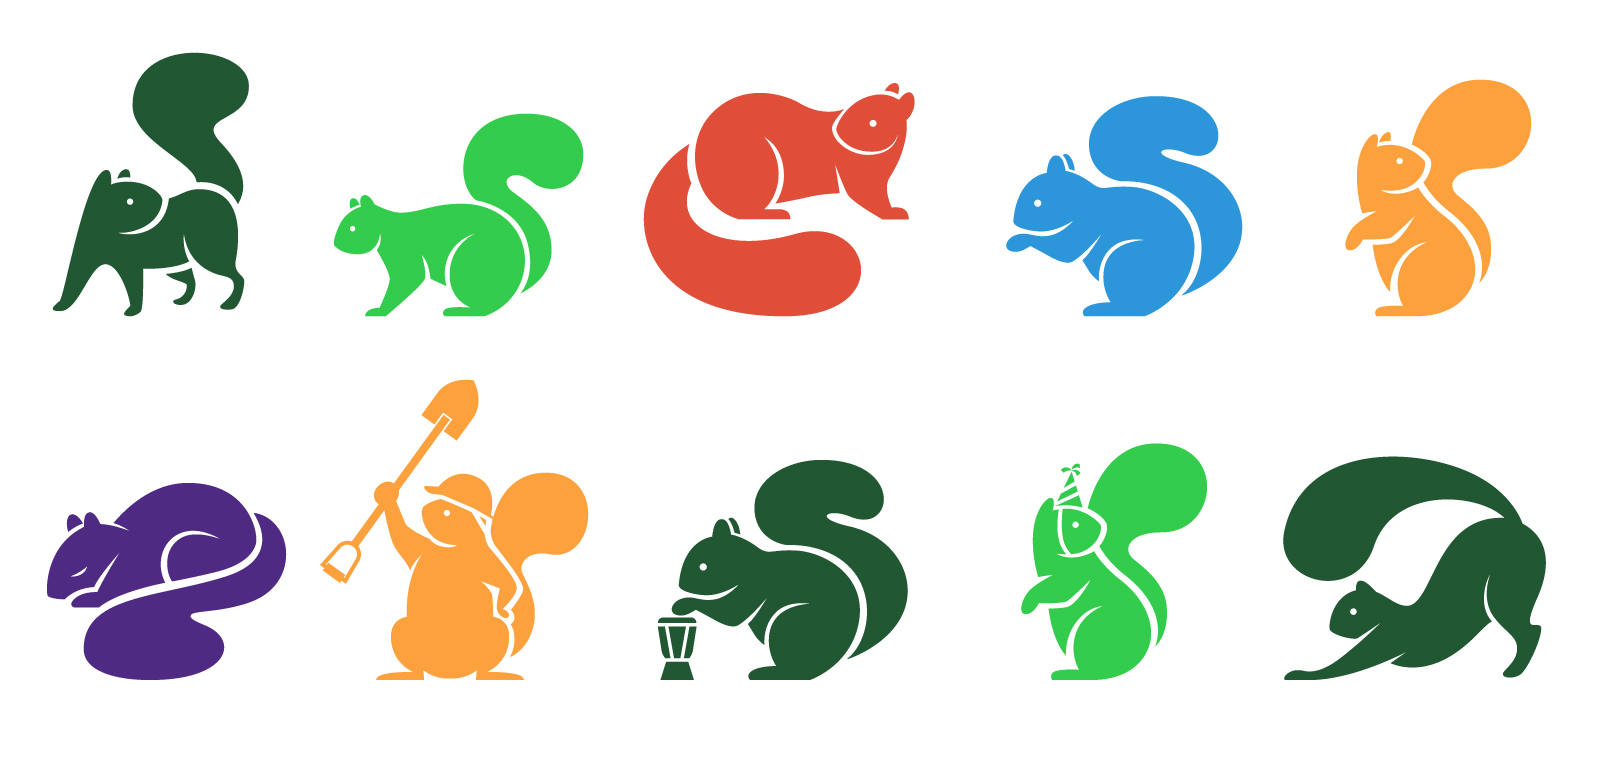 A collection of squirrel characters in different positions.